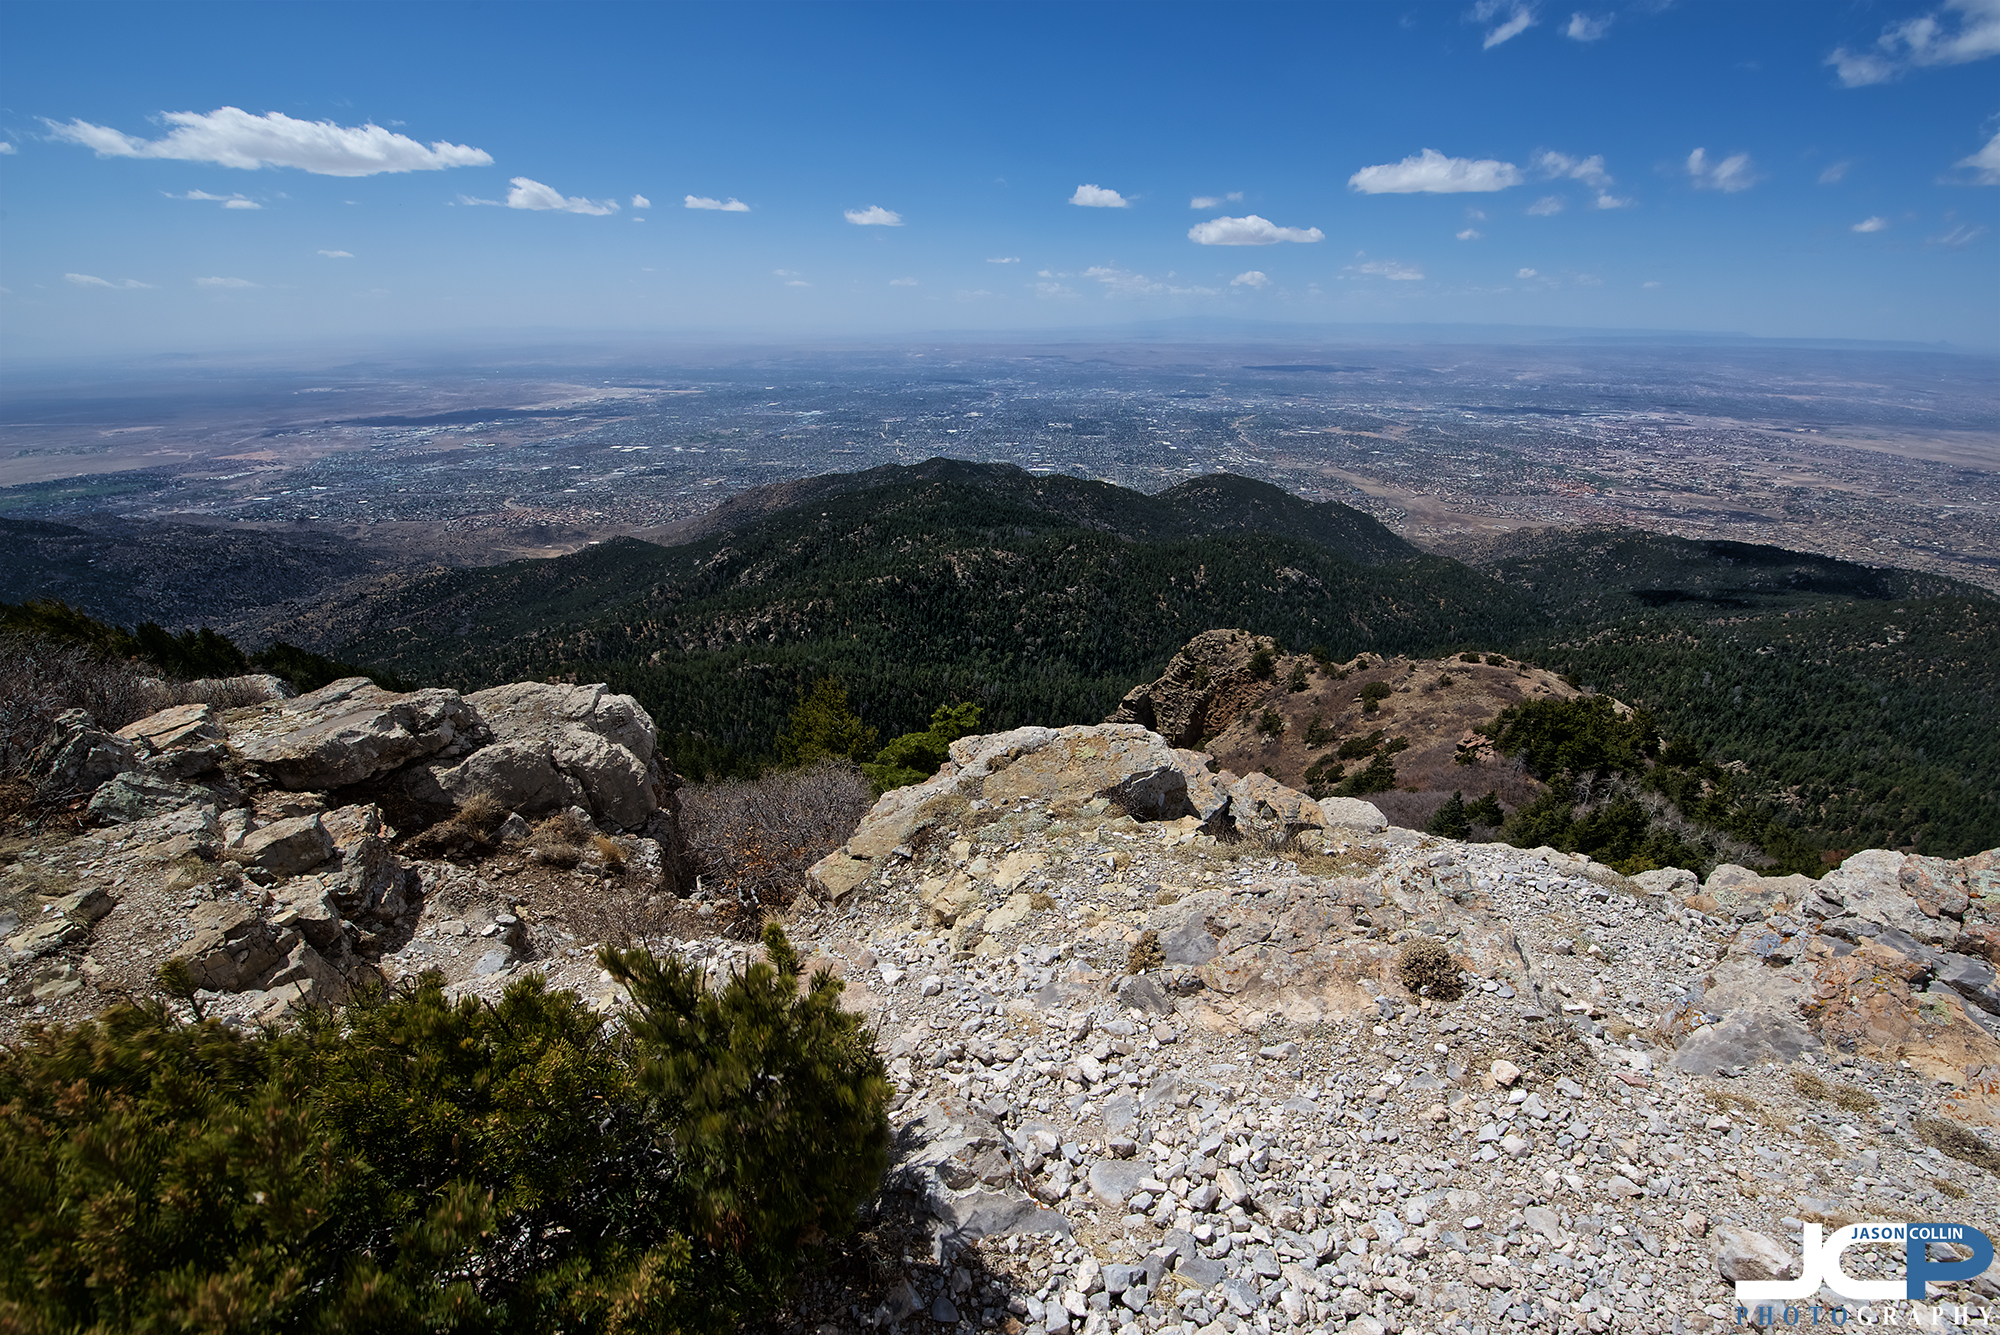 From the summit of South Sandia Peak looking down at Albuquerque, New Mexico